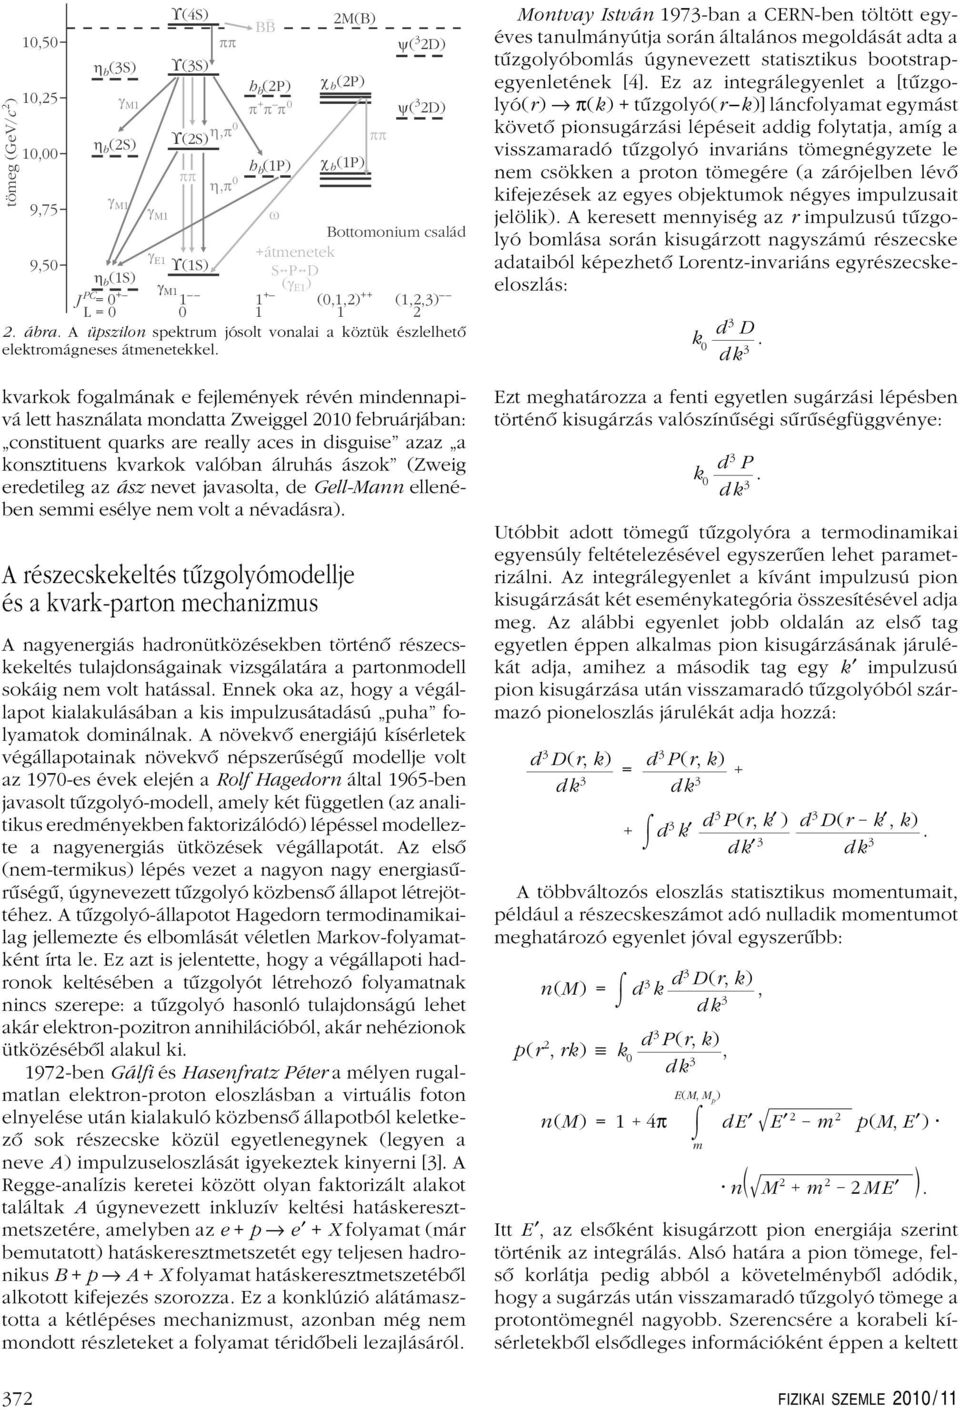 kvarkok fogalmának e fejlemények révén mindennapivá lett használata mondatta Zweiggel 2010 februárjában: constituent quarks are really aces in disguise azaz a konsztituens kvarkok valóban álruhás